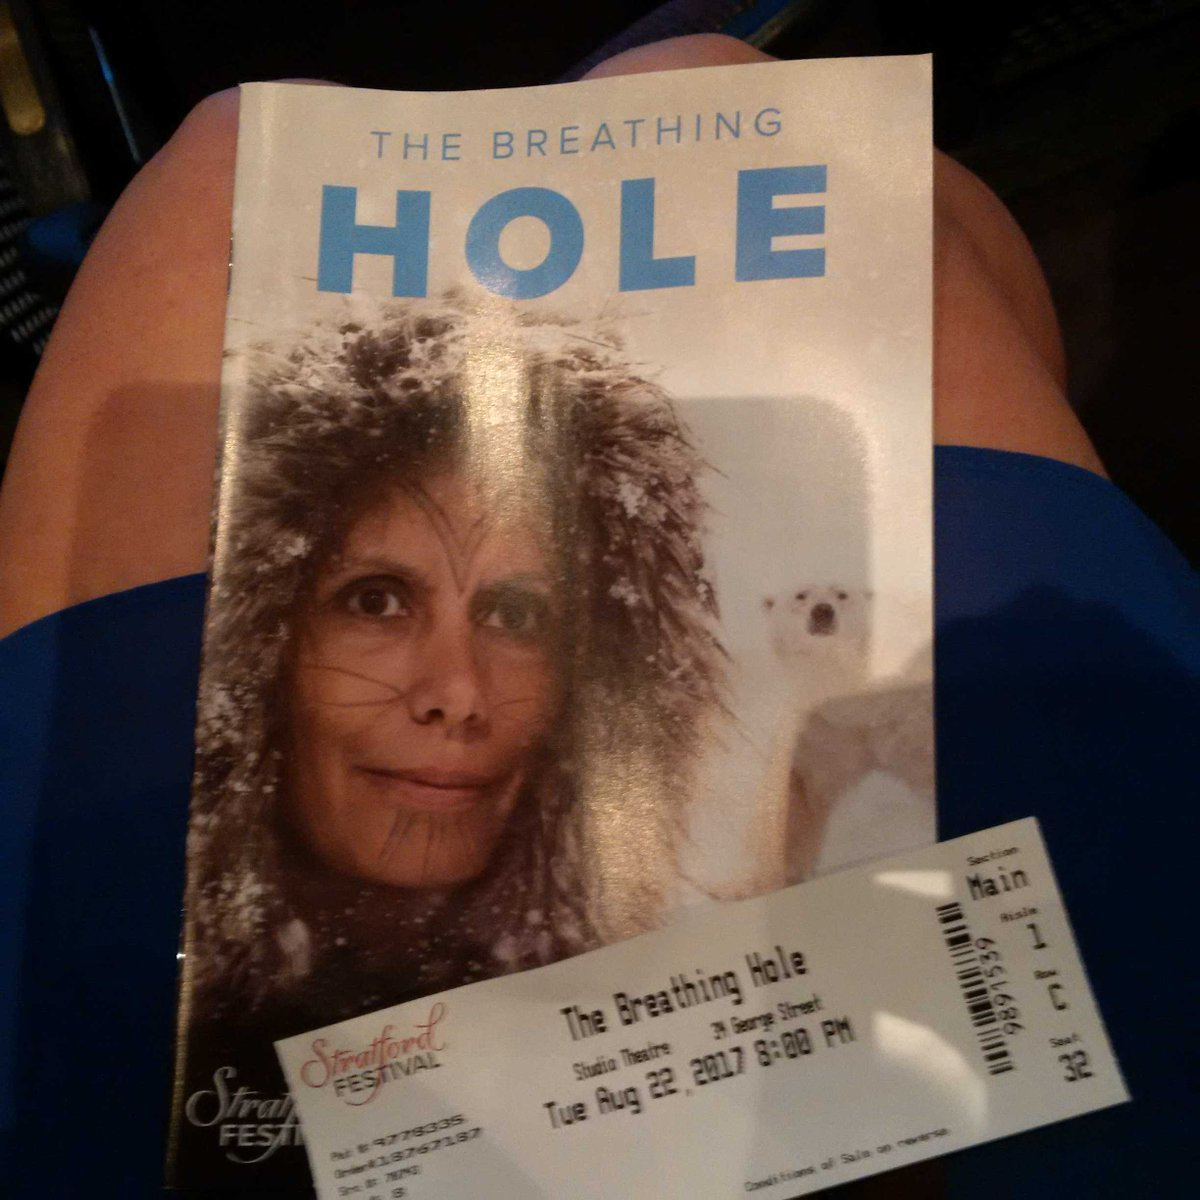 Blown away by &quot;Breathing Hole&quot; @stratfest. Powerful performance and msg. #TRC #Inuit #Indigenous #PolarBear #climate<br>http://pic.twitter.com/V3U1e0qEpG